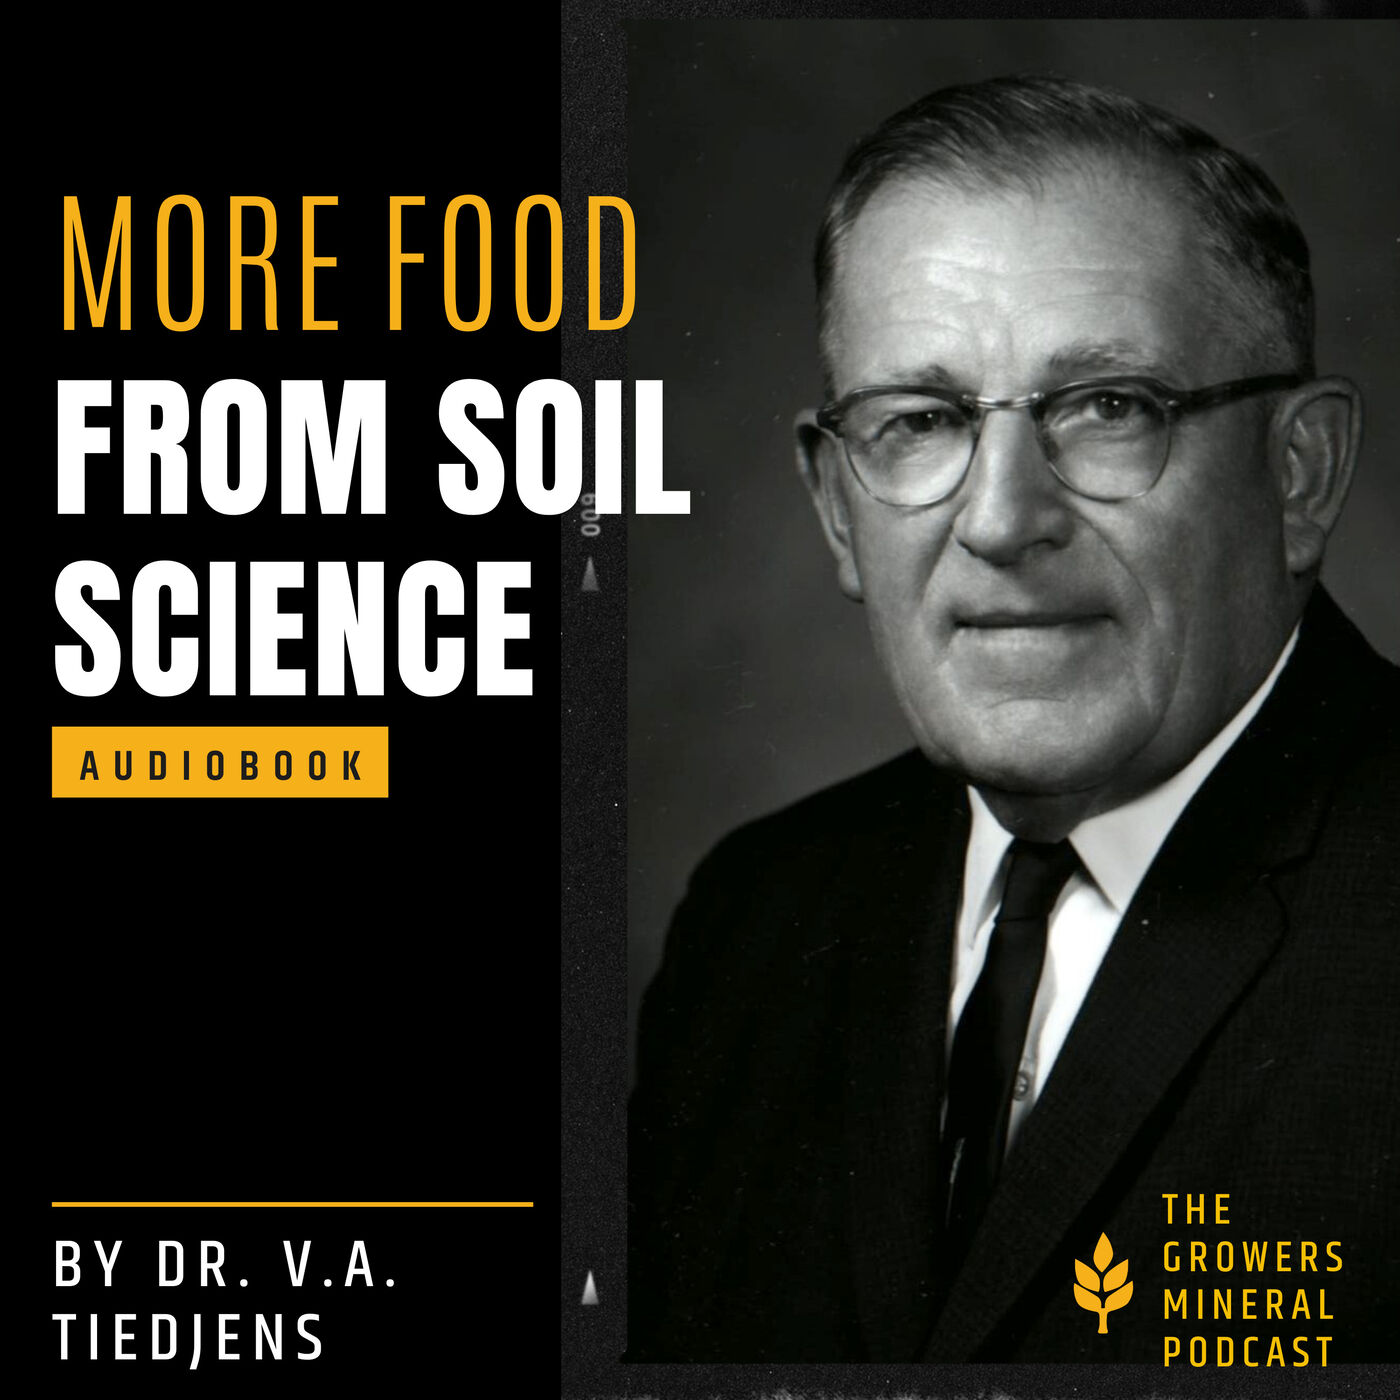 More Food from Soil Science Audiobook Ch. 3 - Some Crops Are MORE Sensitive to Calcium Needs